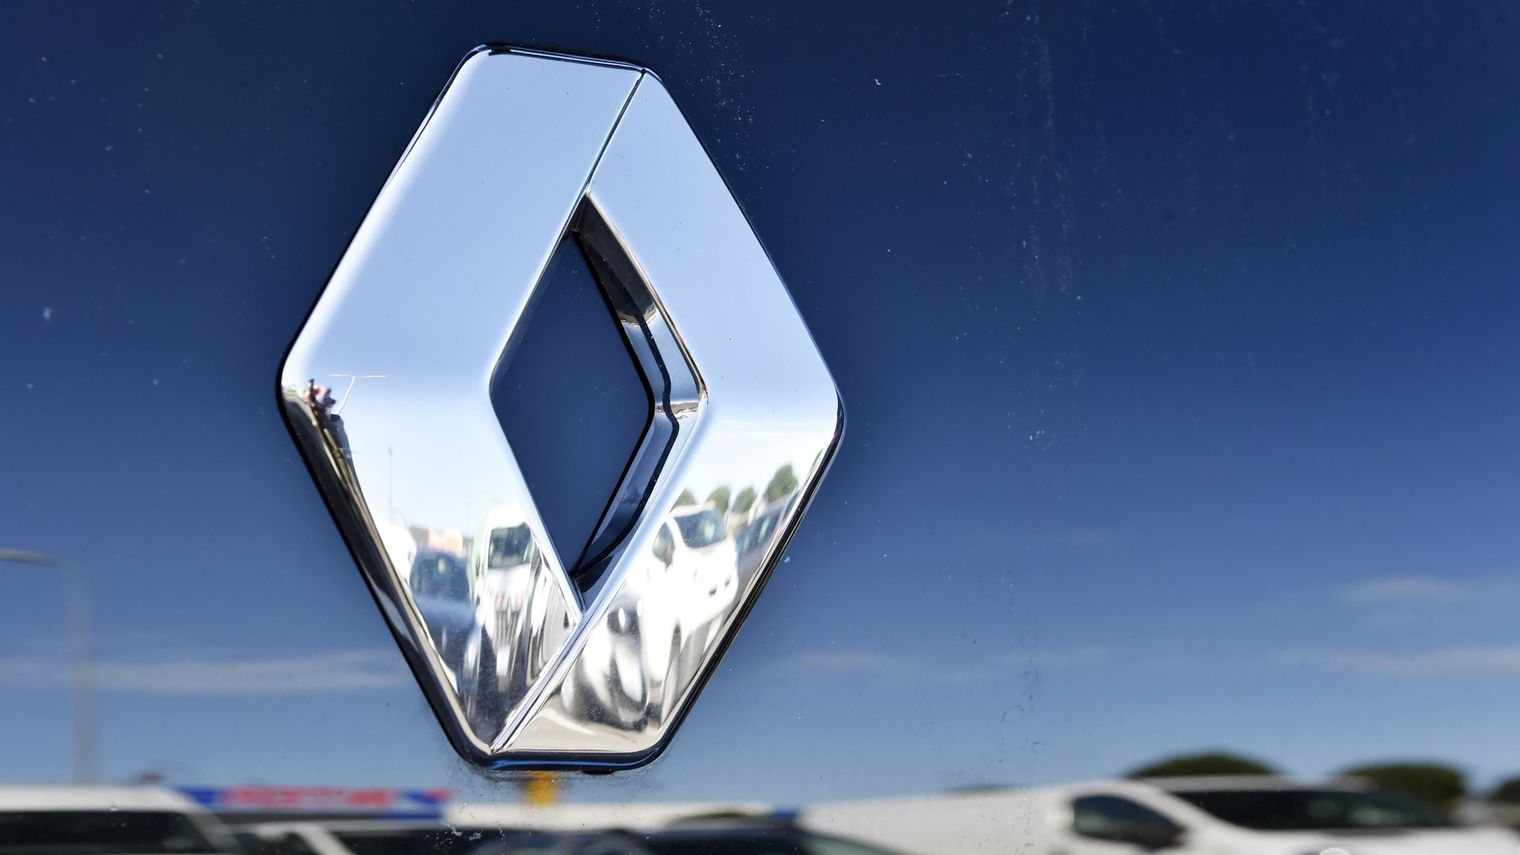 Renault Maroc : Lamia pour illuminer le marketing